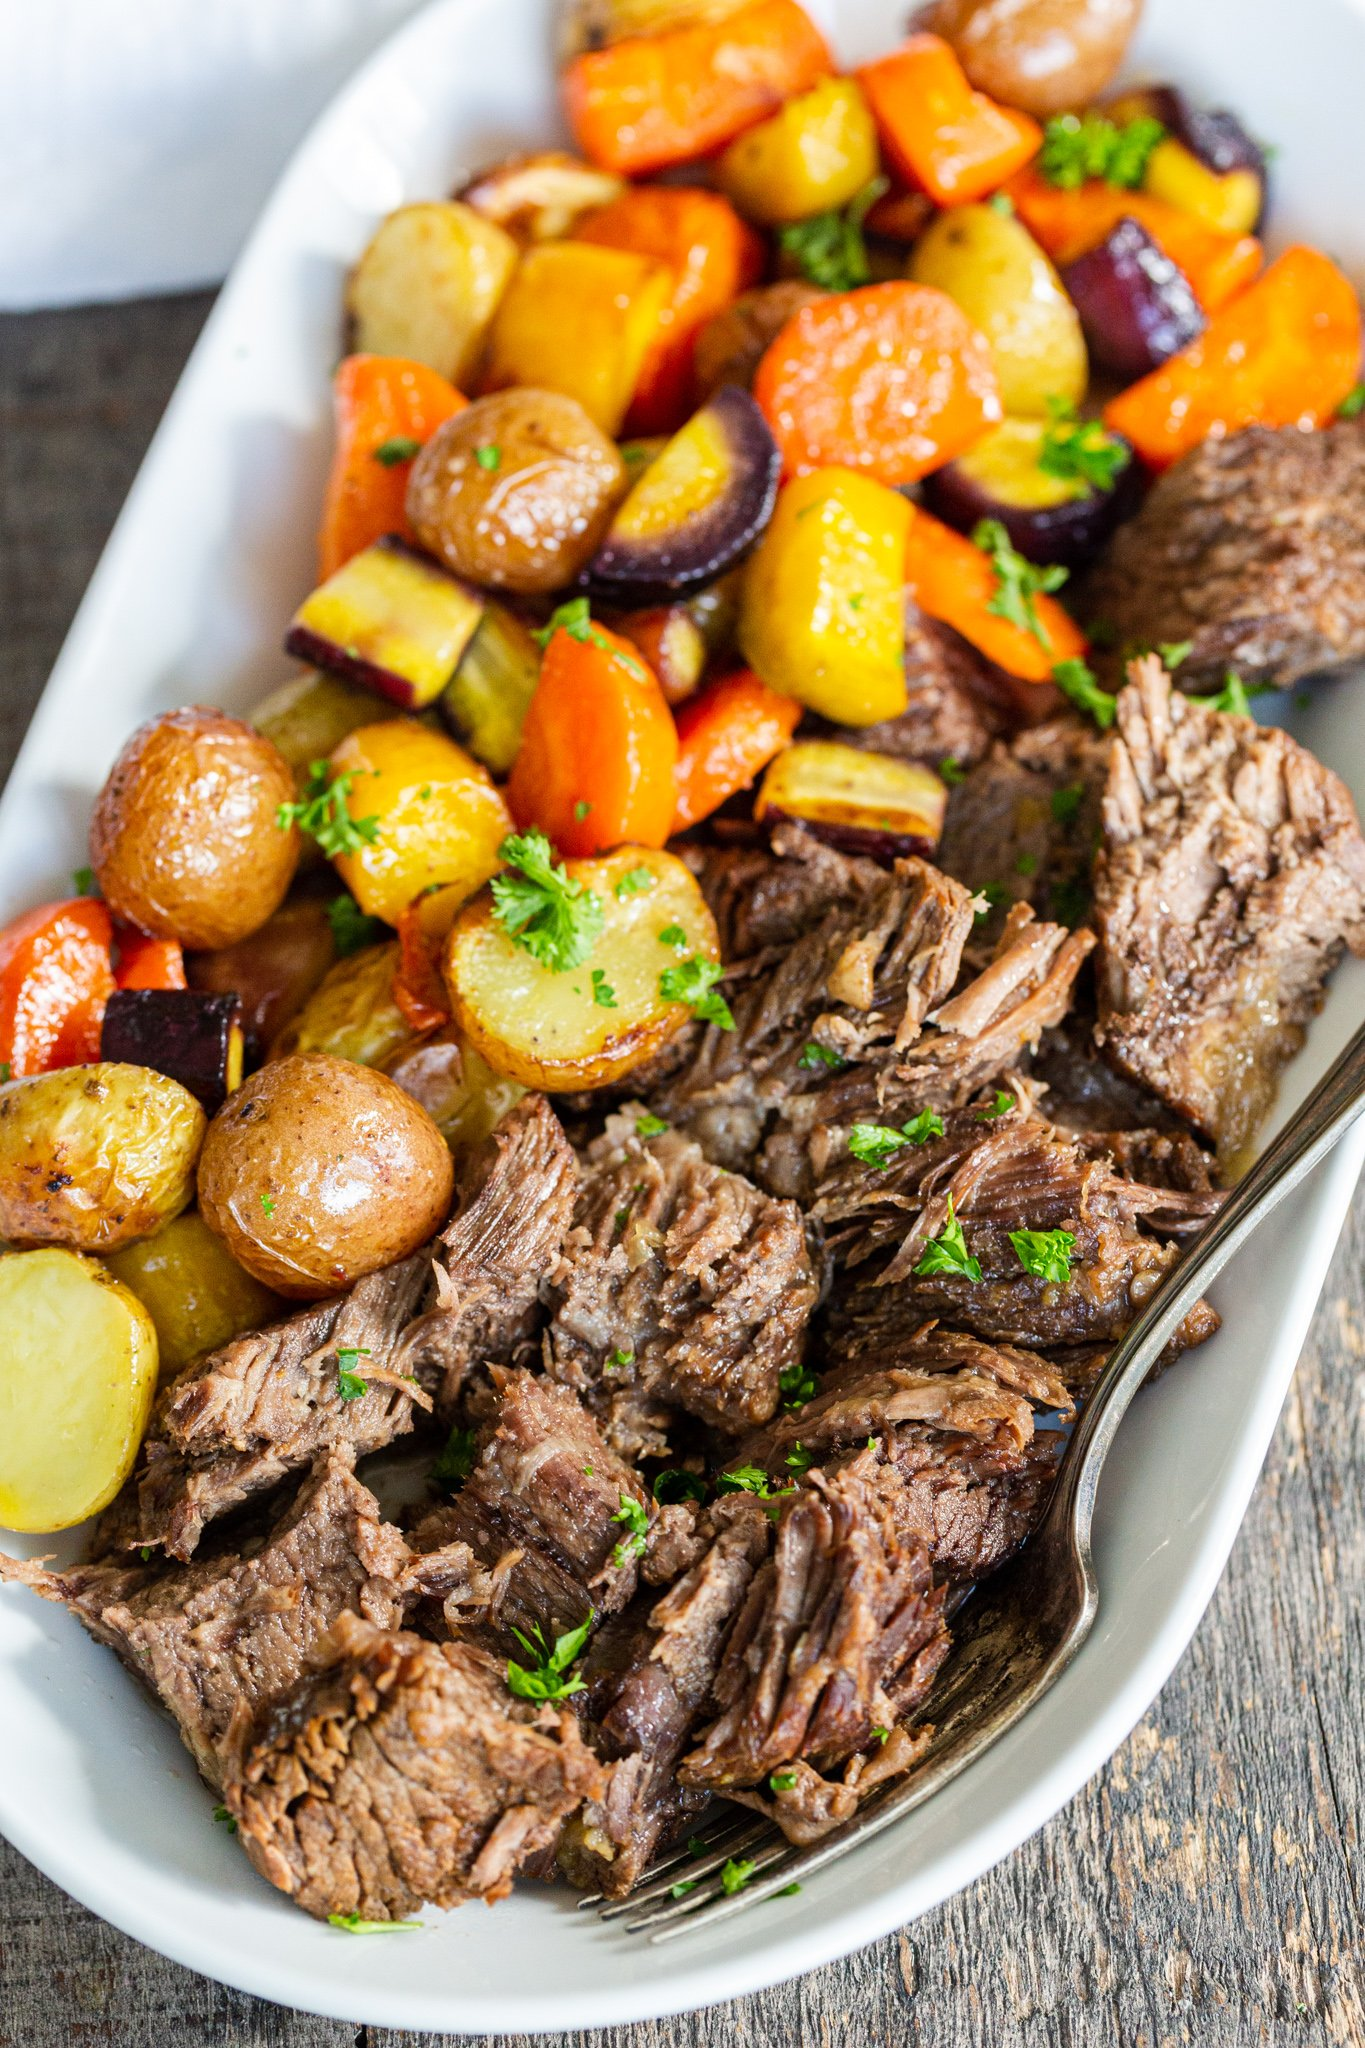 a serving plate with beef and carrots with potatoes